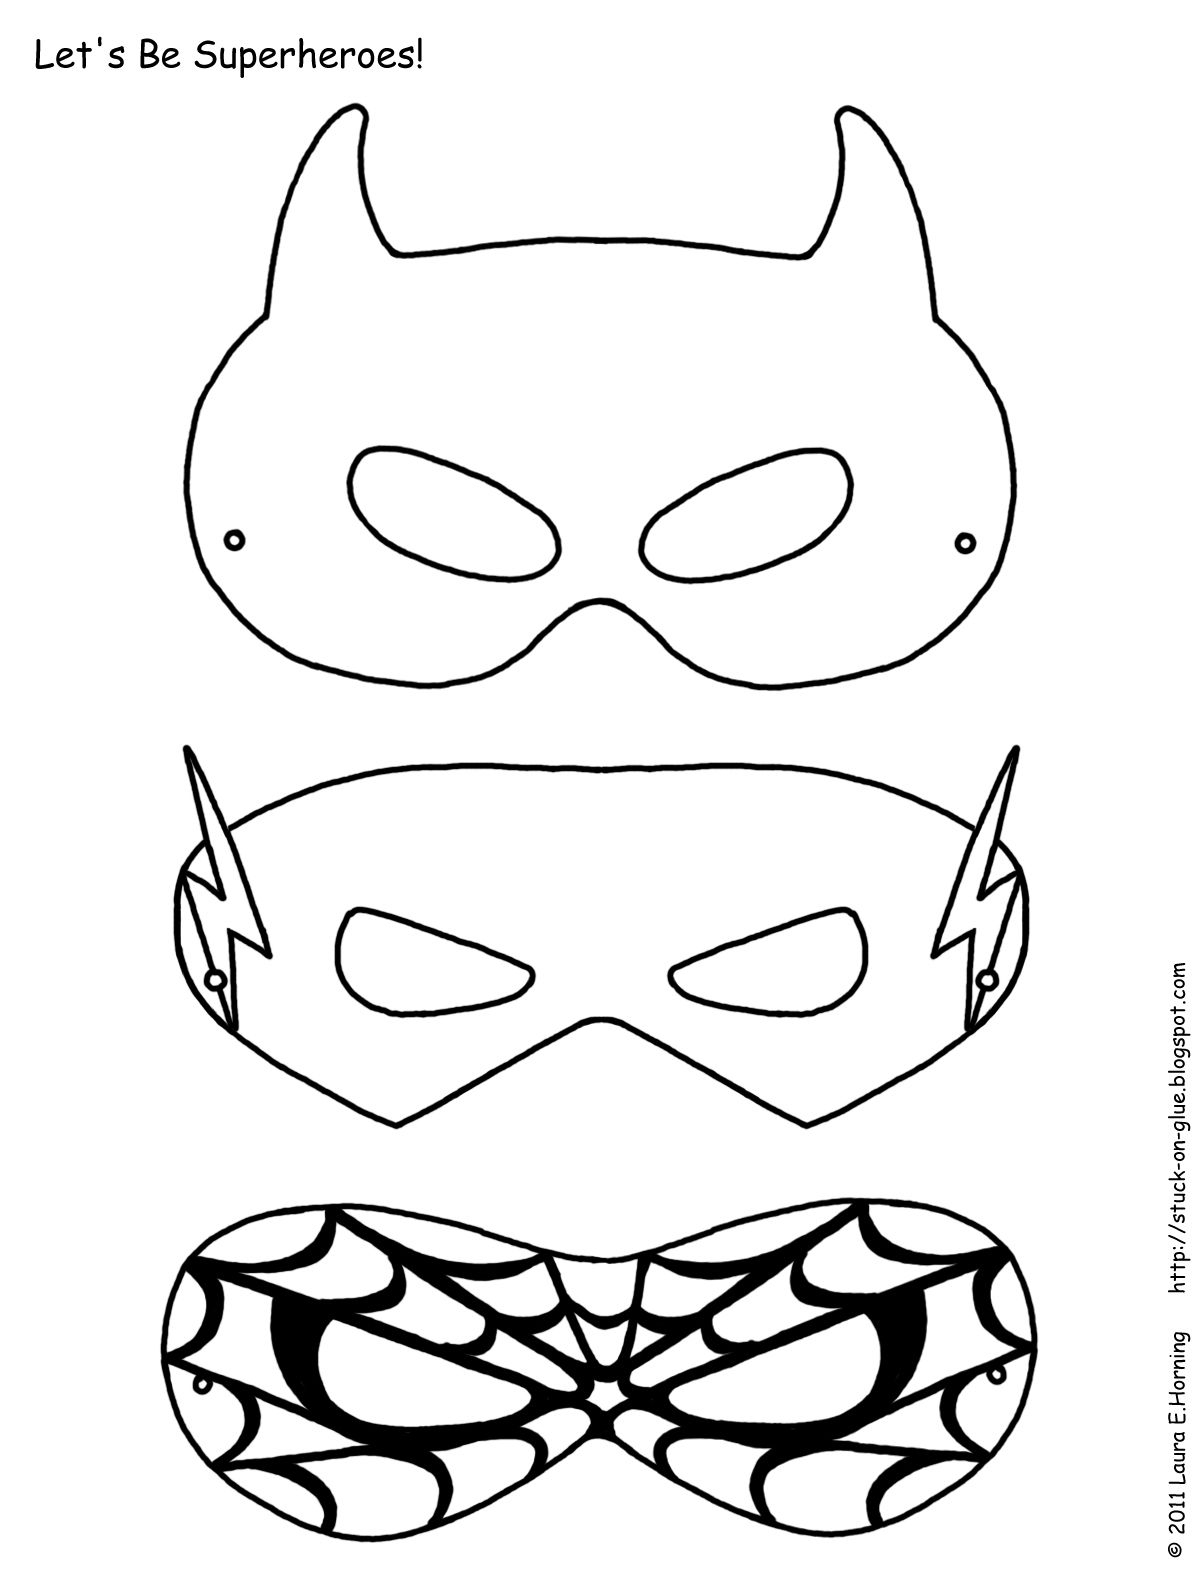 Templates For Superhero Masks   How Have We Survived?  Paper Face Mask Template